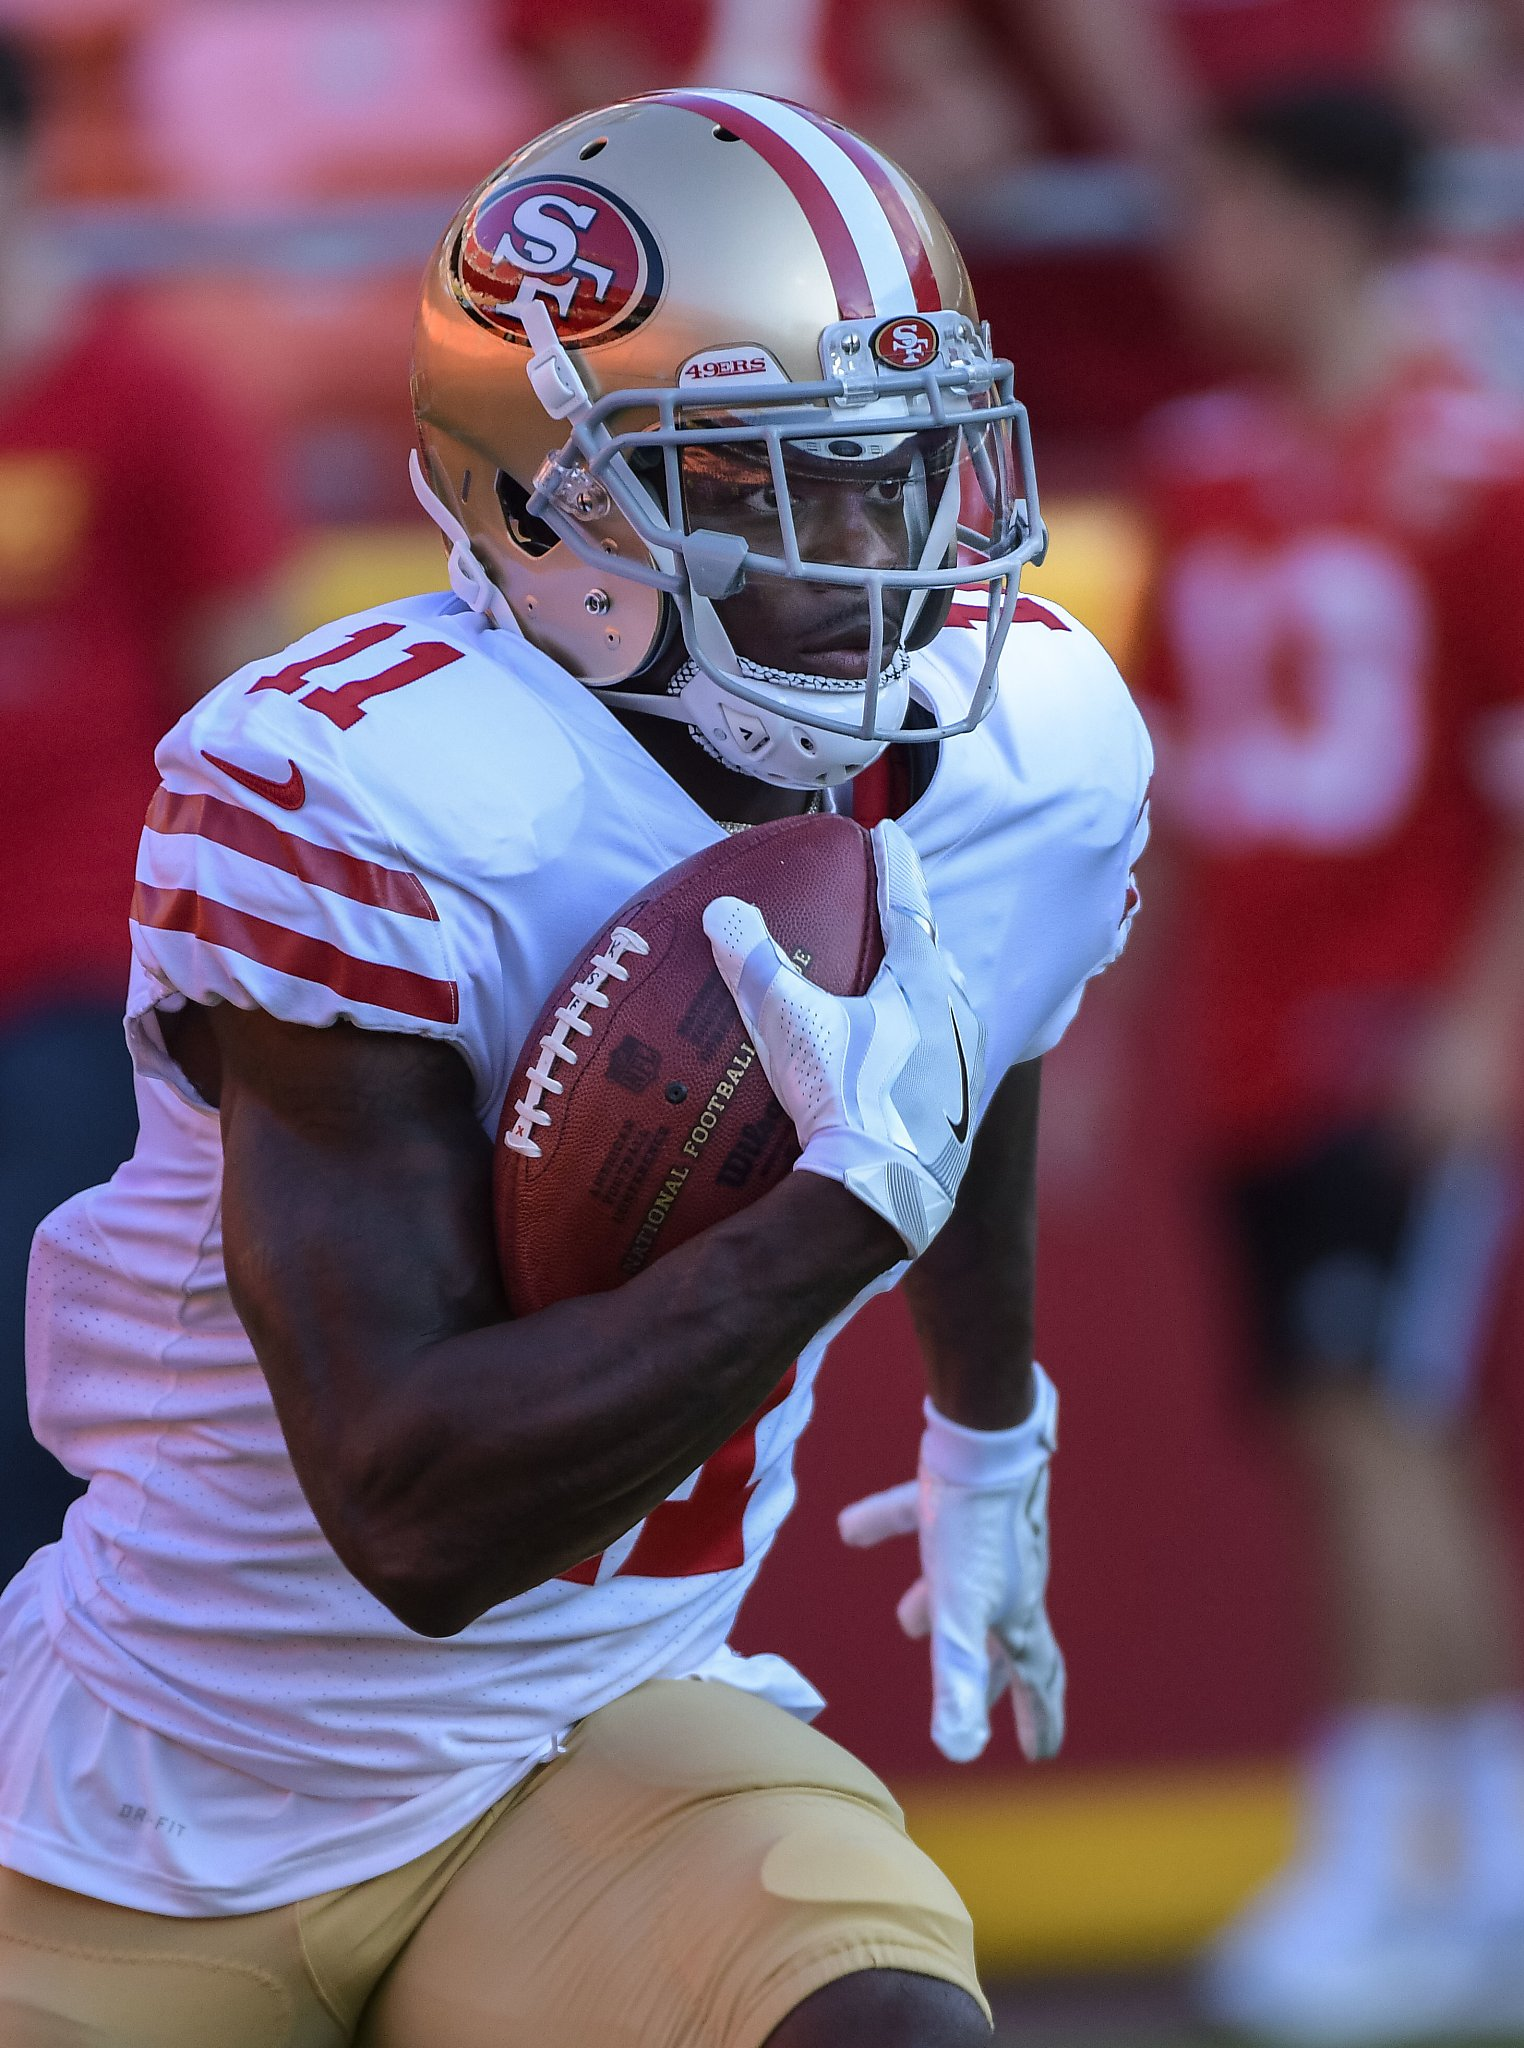 f69ea0ca916 Marquise Goodwin (11) of the San  49ers WR Marquise Goodwin played hours  after family tragedy  49ers speedy Goodwin shows hes more than a wide  receiver - S ...